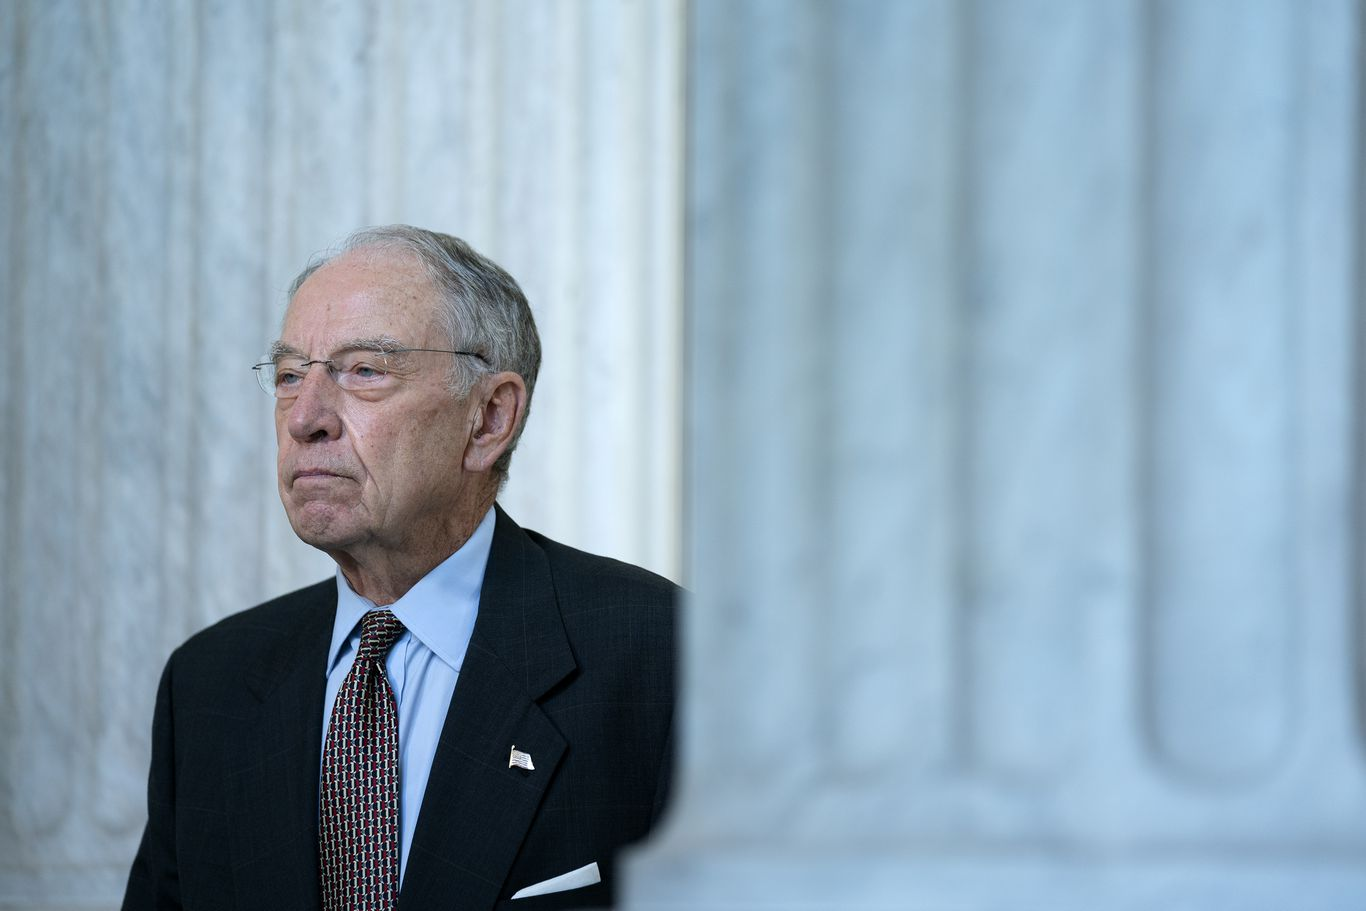 Chuck Grassley says he tested positive for COVID-19 thumbnail